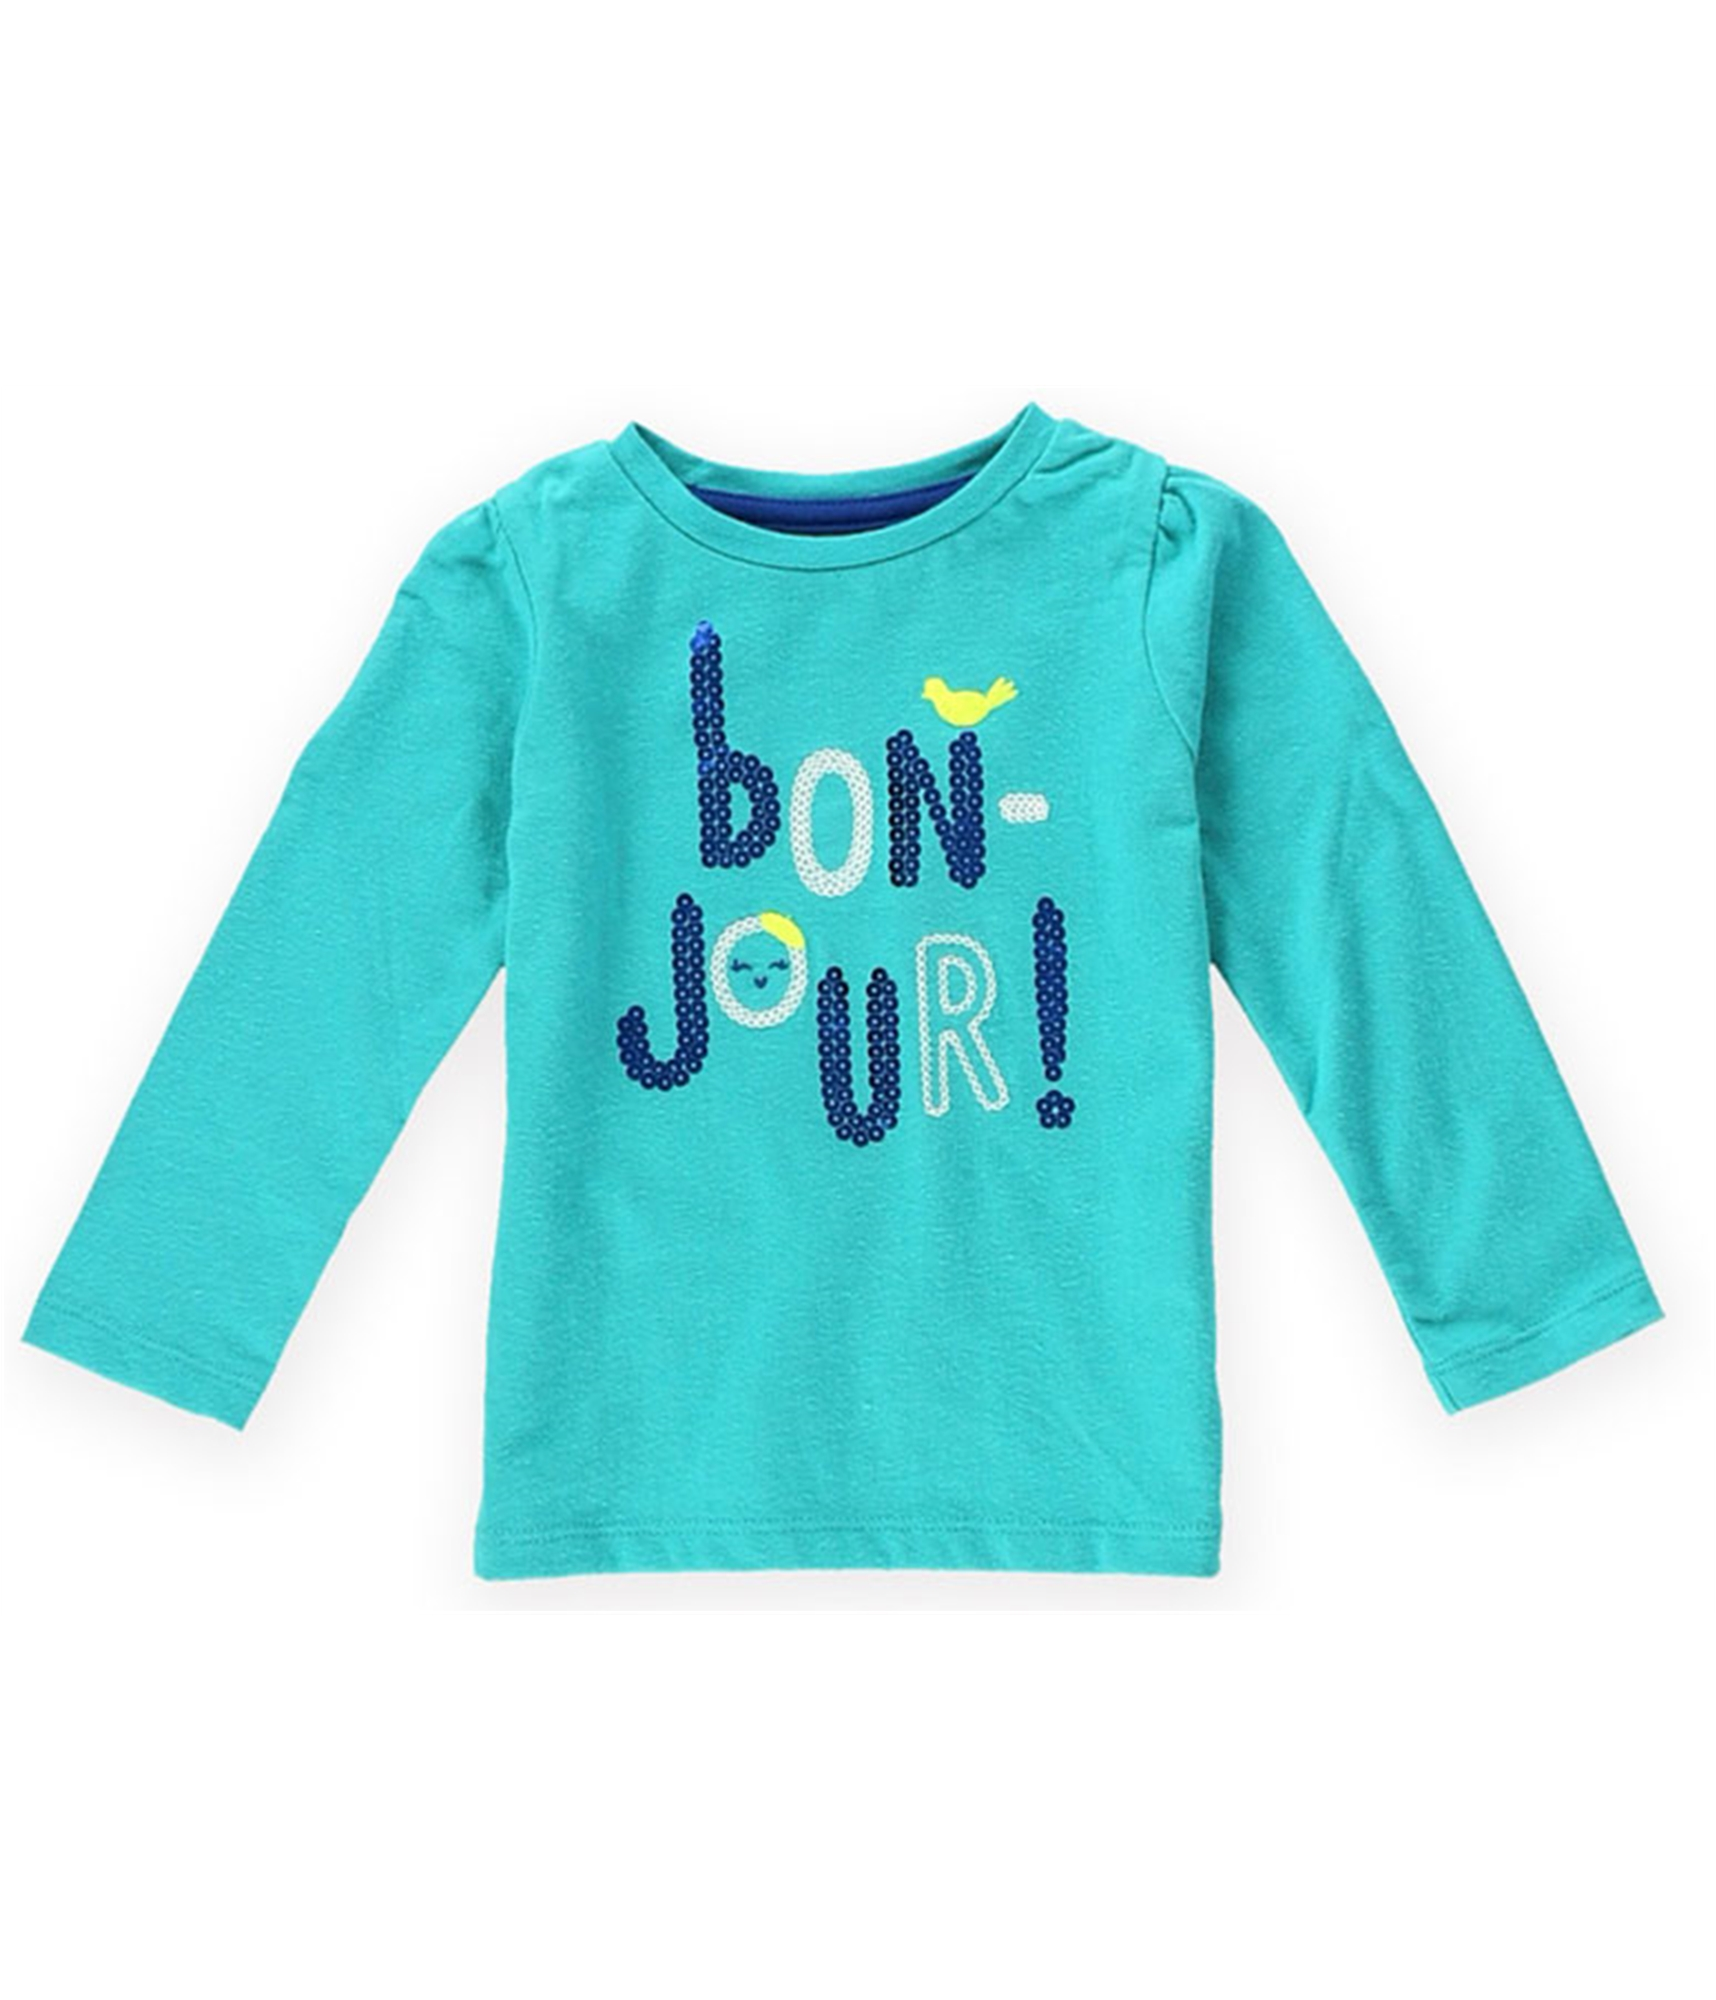 Gymboree Birthday Girl Embellished Cotton Tee Shirt 2T  New $19.95 MSRP